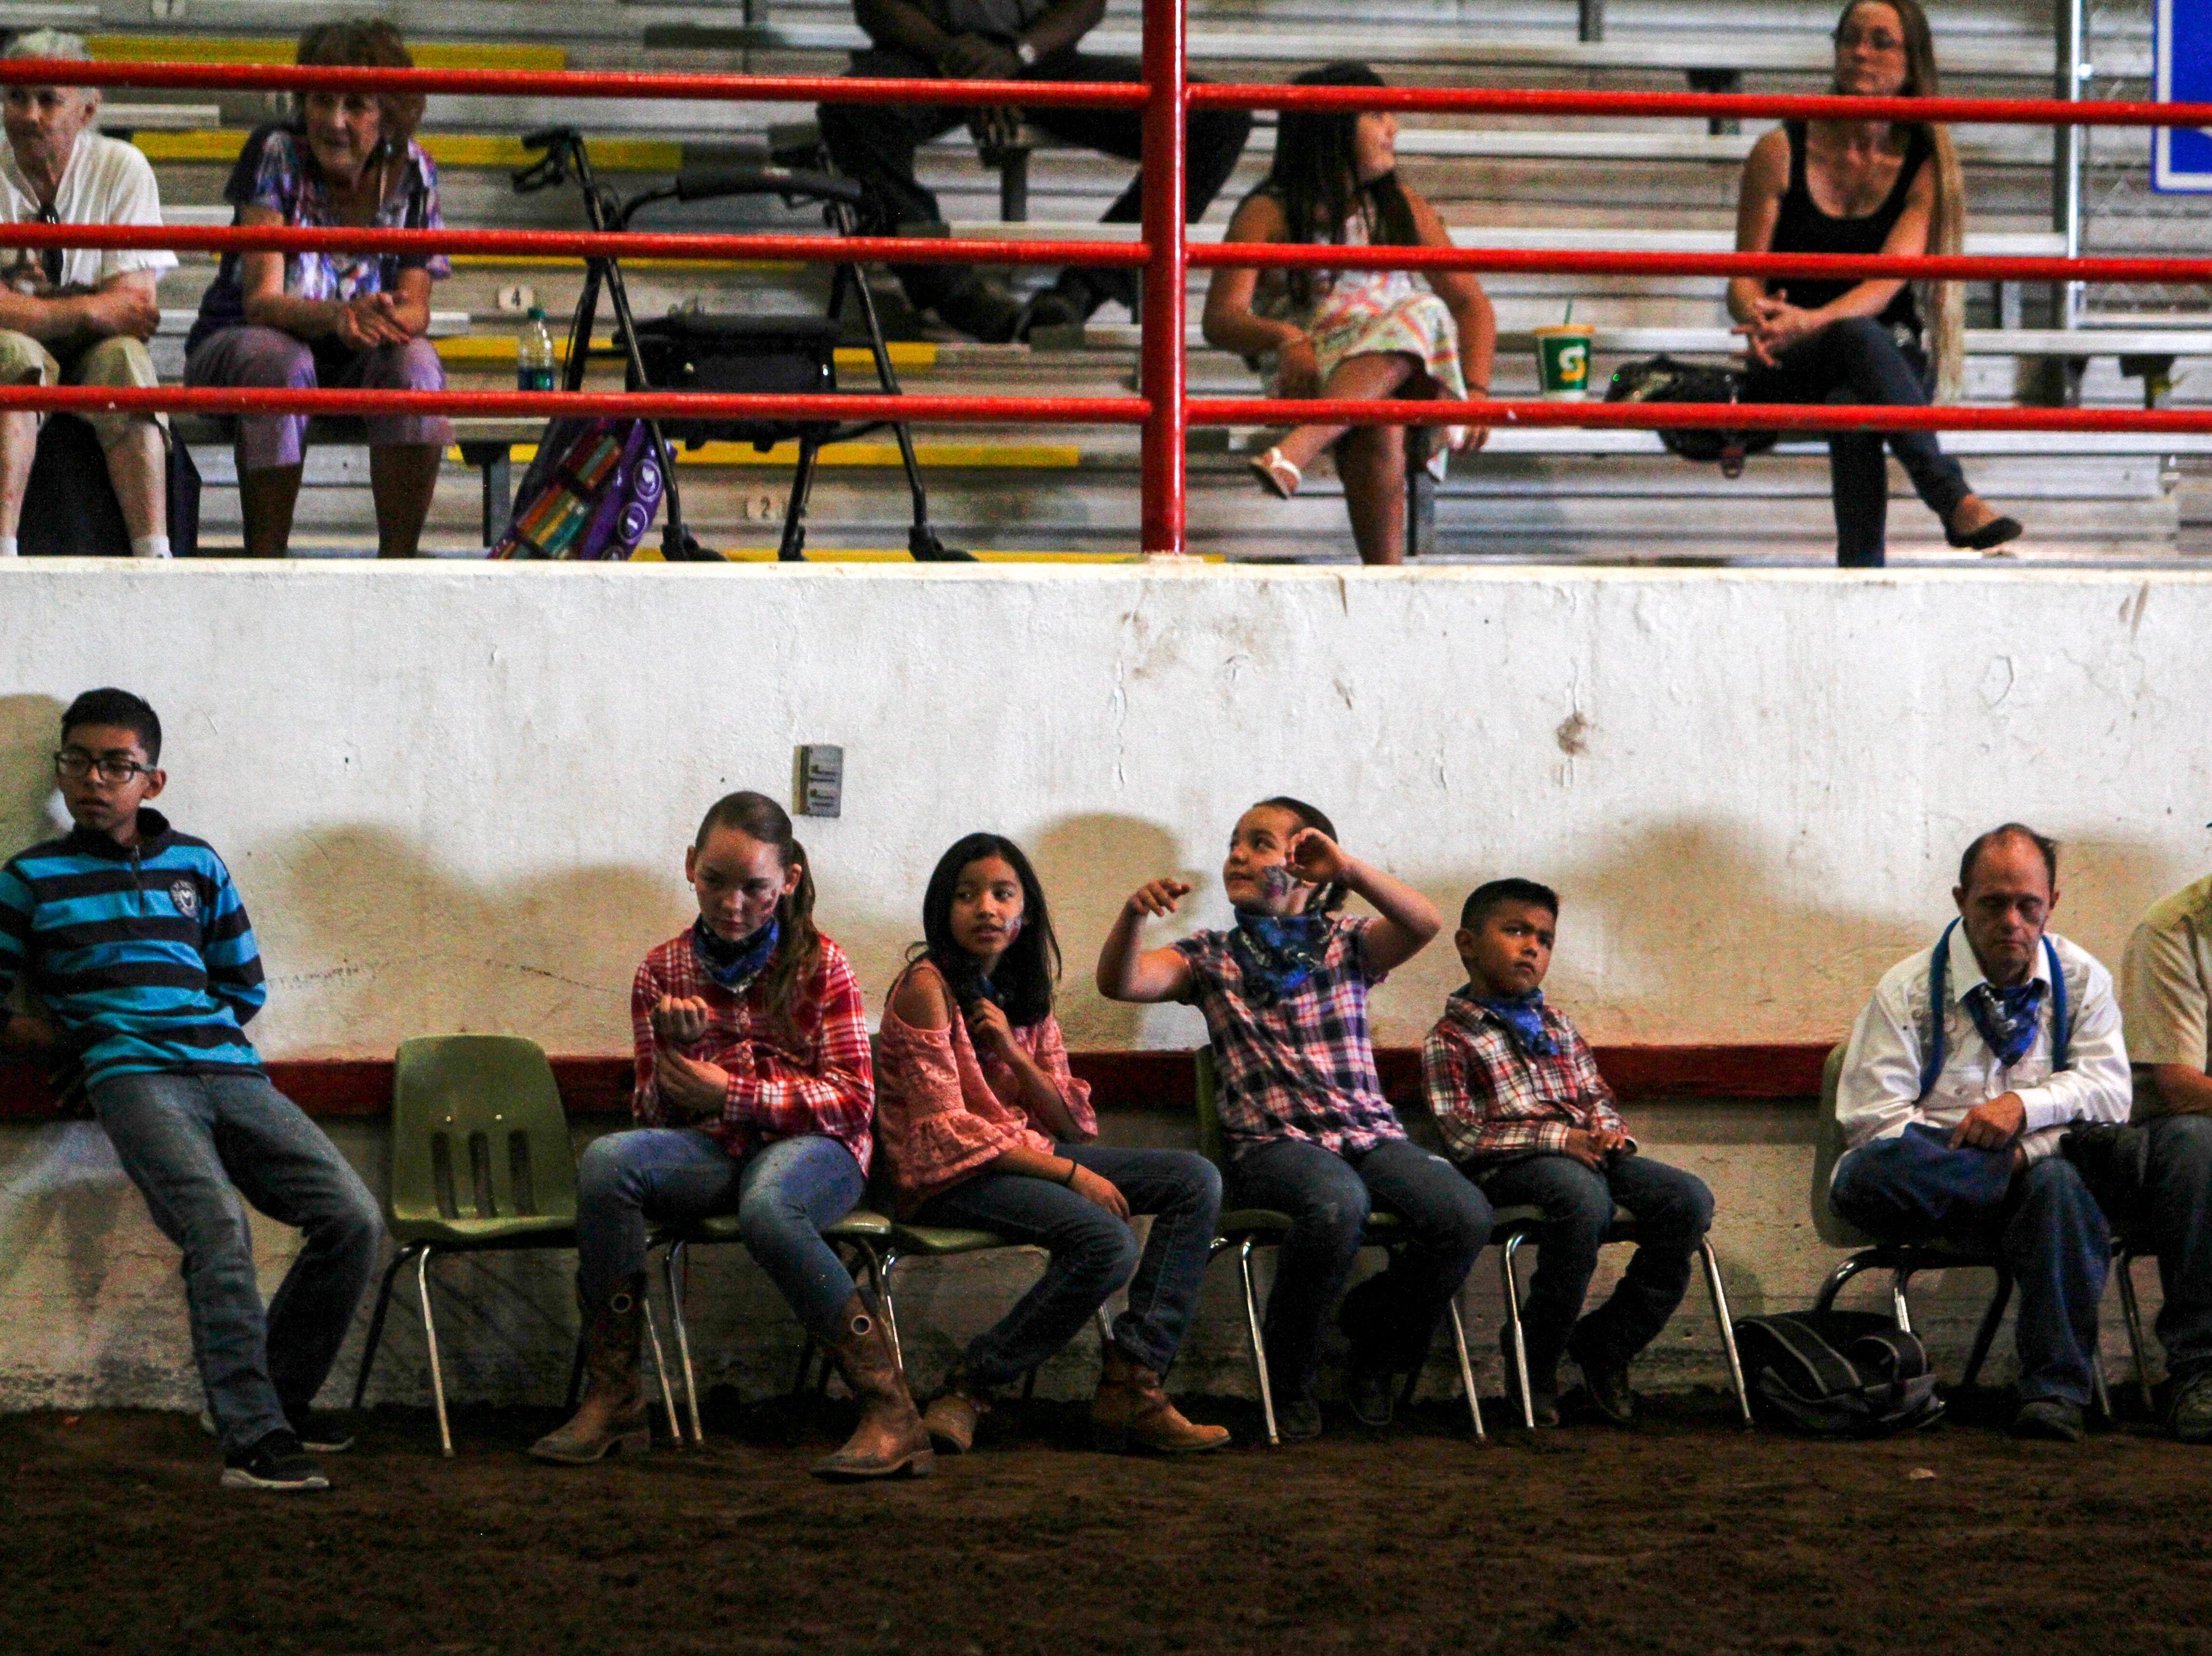 Participants wait their turn to participate in a special horse show, Wednesday, Aug. 15. 2018 at the Main Event an equestrian show for people with special needs at the San Juan County Fair in Memorial Coliseum at McGee Park in Farmington